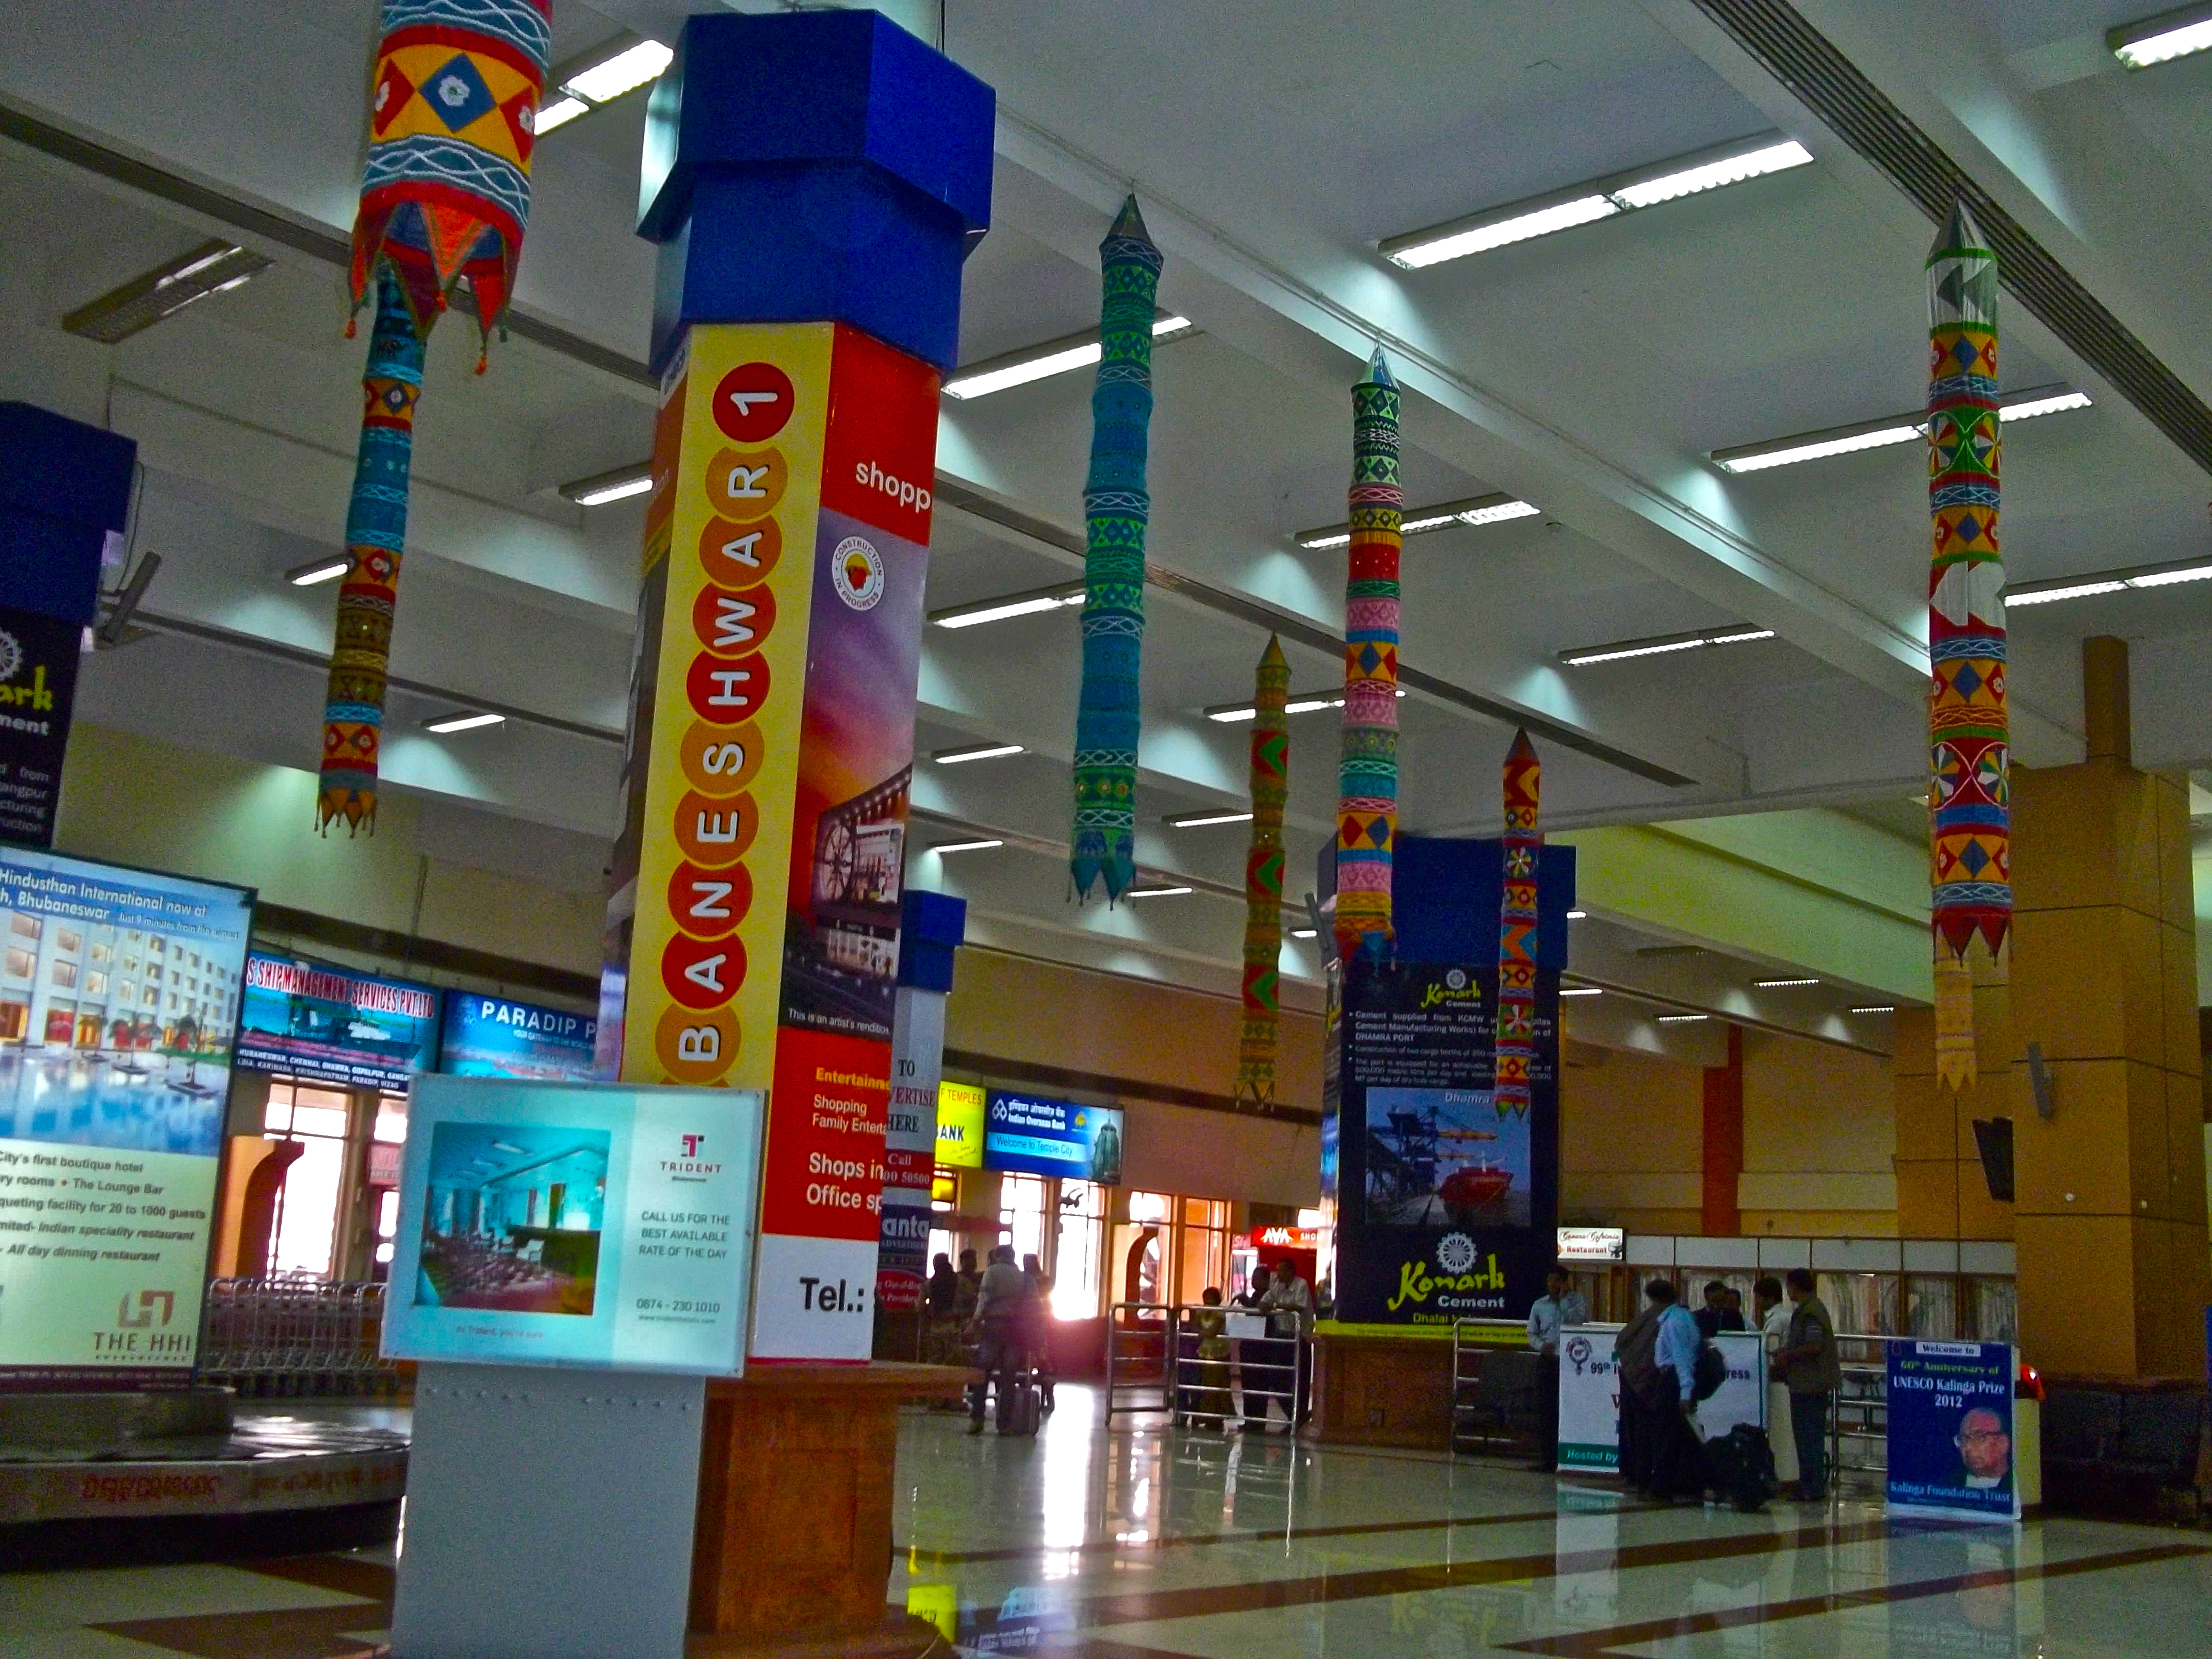 Biju Patnaik Airport serves the Indian city of Bhubaneswar.